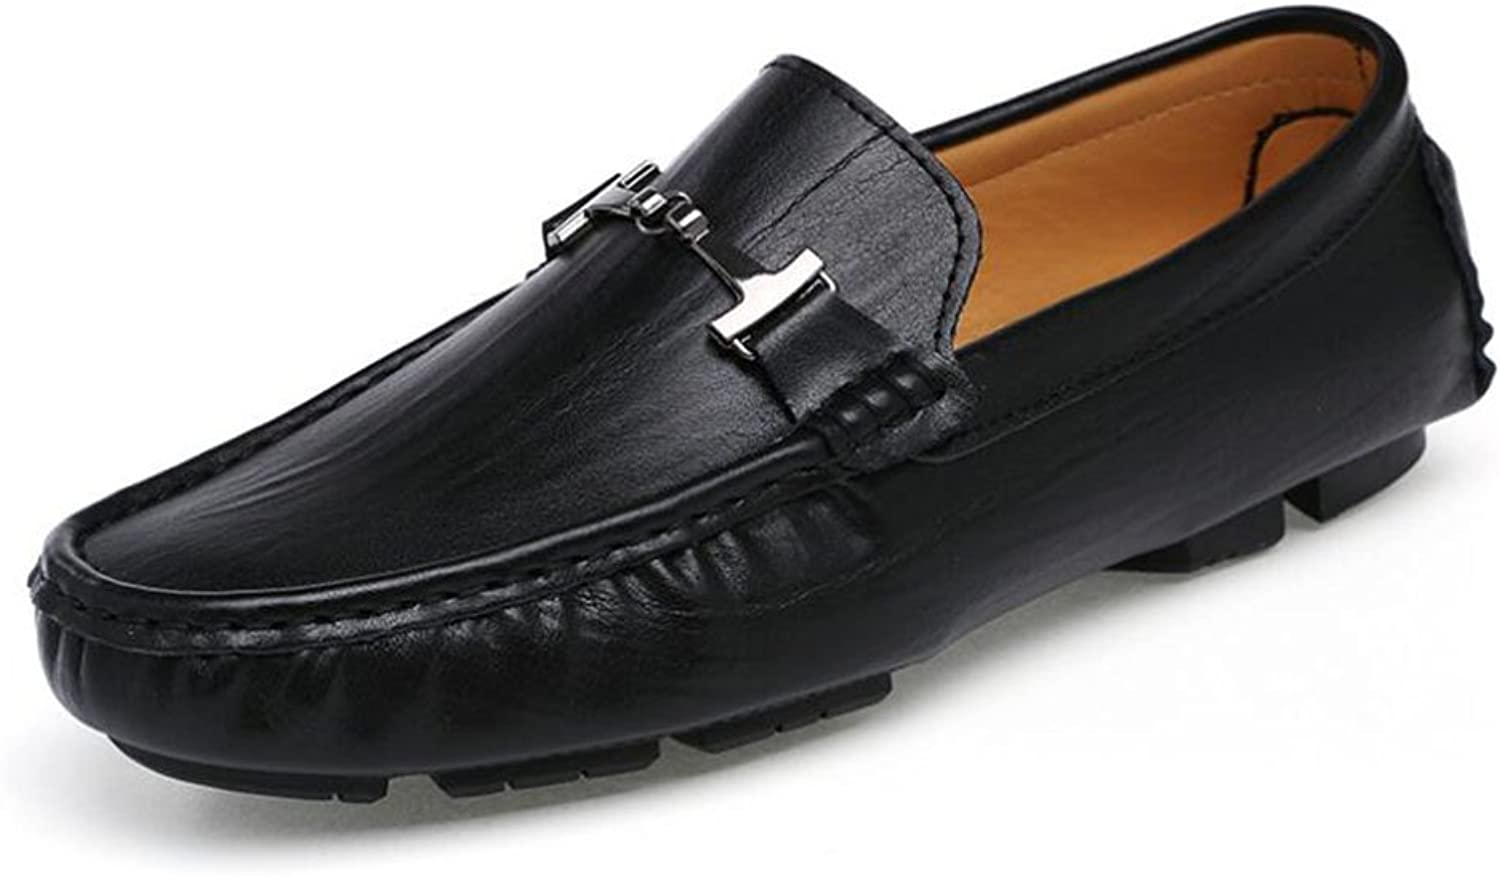 Men's Genuine Leather Loafers Spring Fall New Lazy shoes Mens Comfort Boat shoes Driving shoes Daily Office   Casual (color   Black, Size   40)